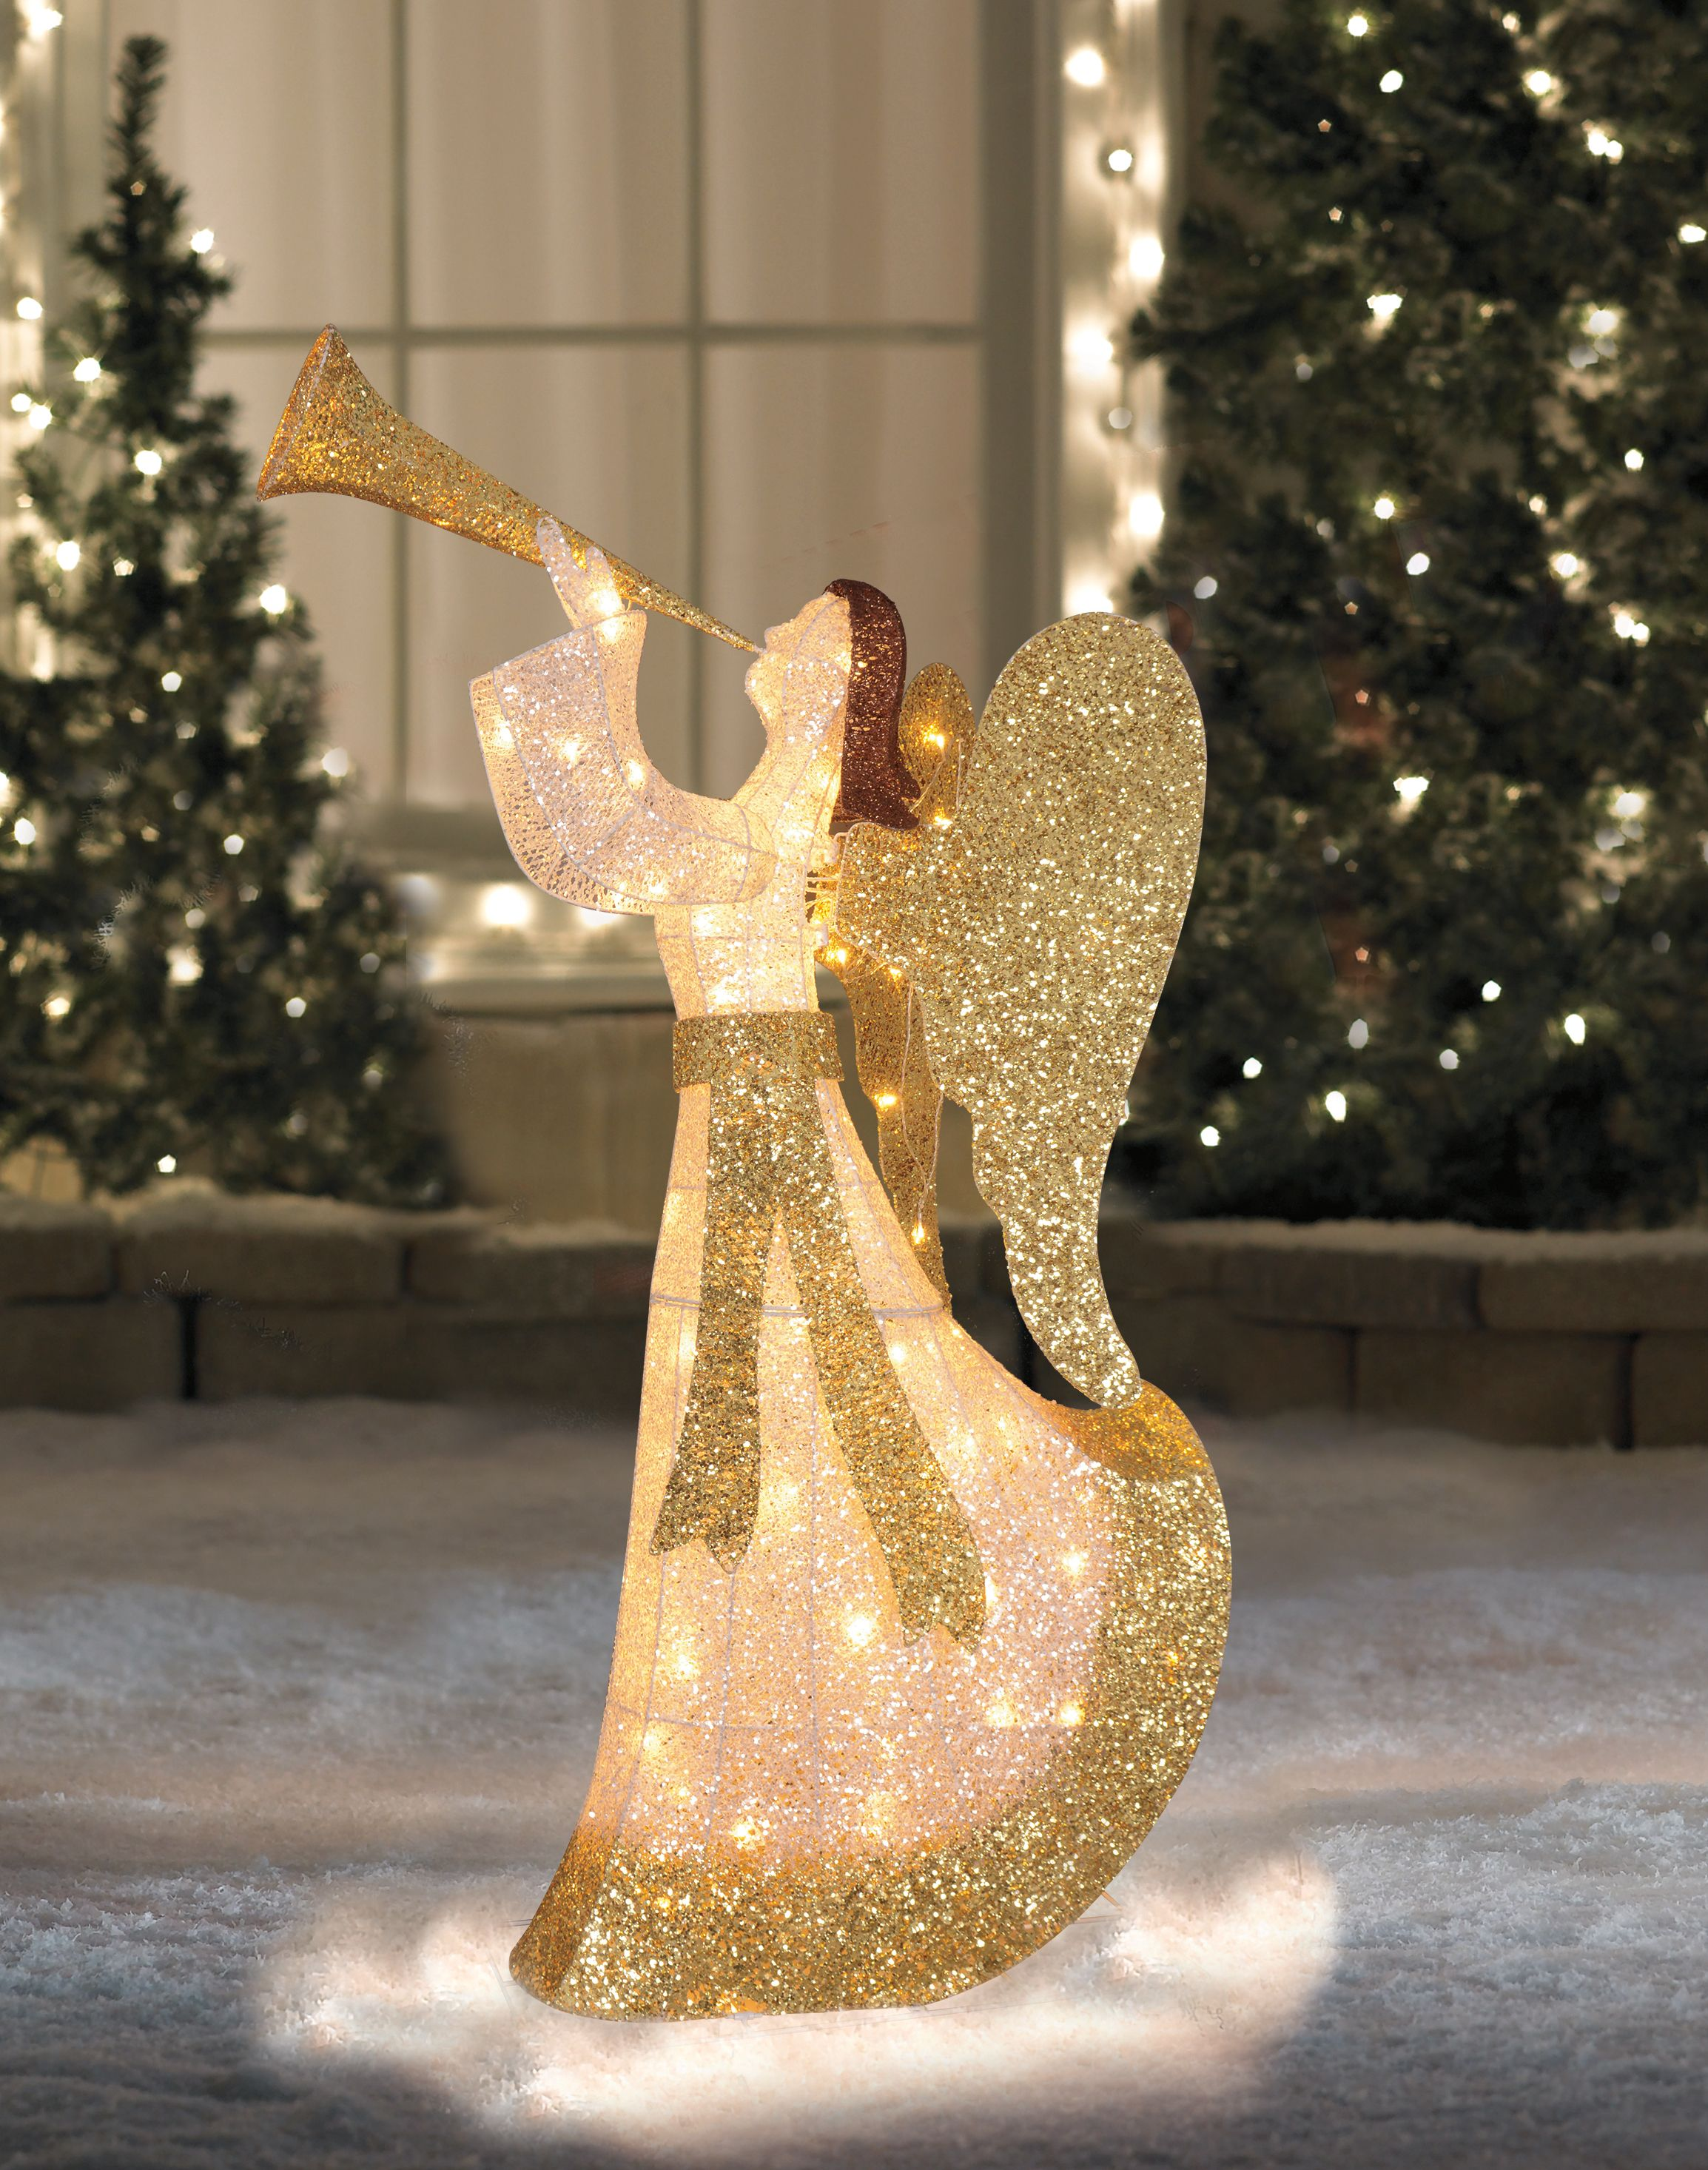 44 Cotton Thread Led Lighted Gold And Silver Glitter Angel Outdoor Christmas Decoration Outdoor Christmas Decorations Outdoor Christmas Outdoor Holiday Decor Outdoor lighted angel christmas decorations